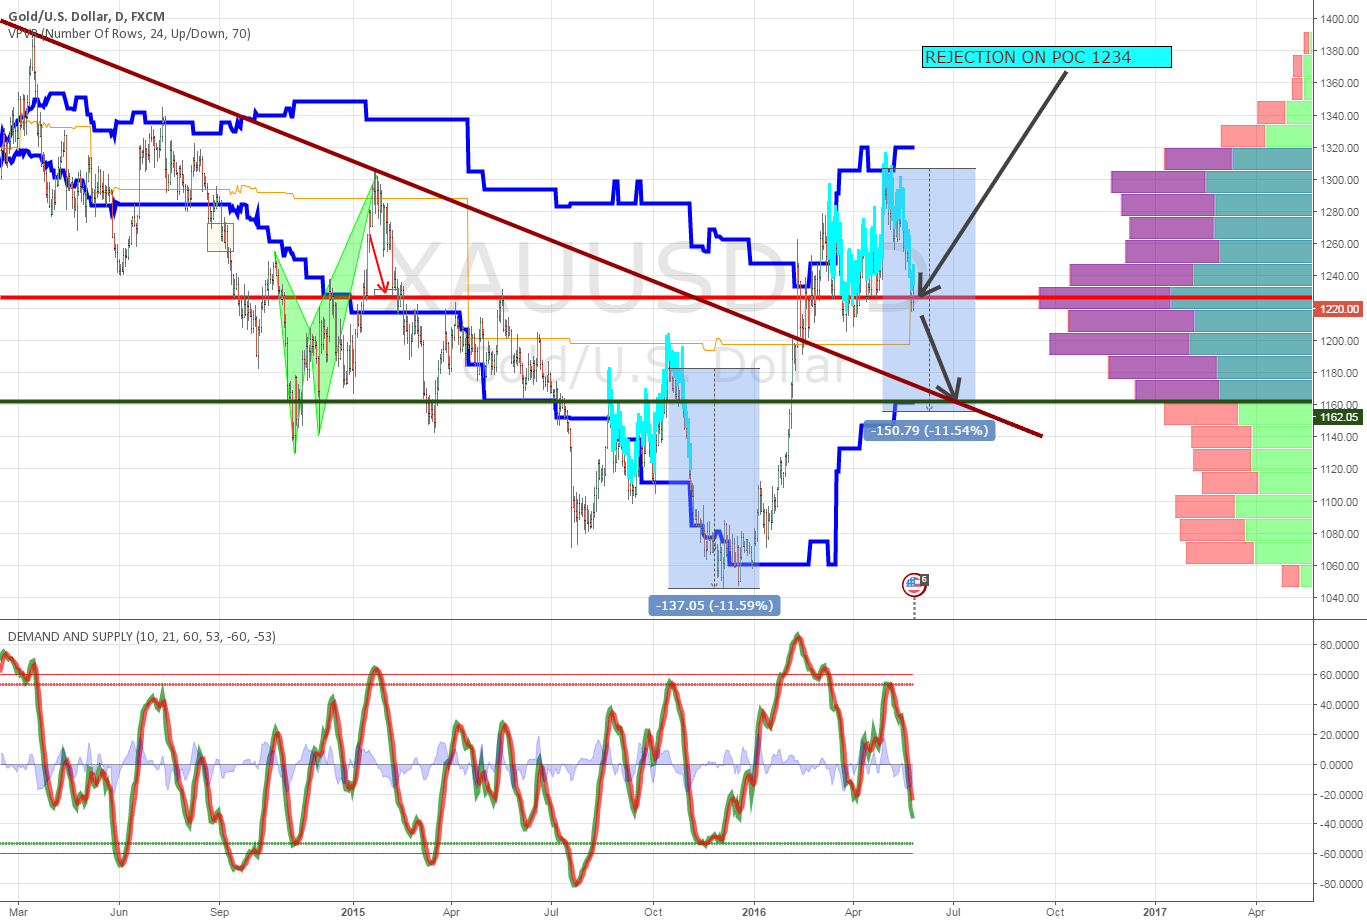 POC is 1234, bottom value area is 1160, indicators are down